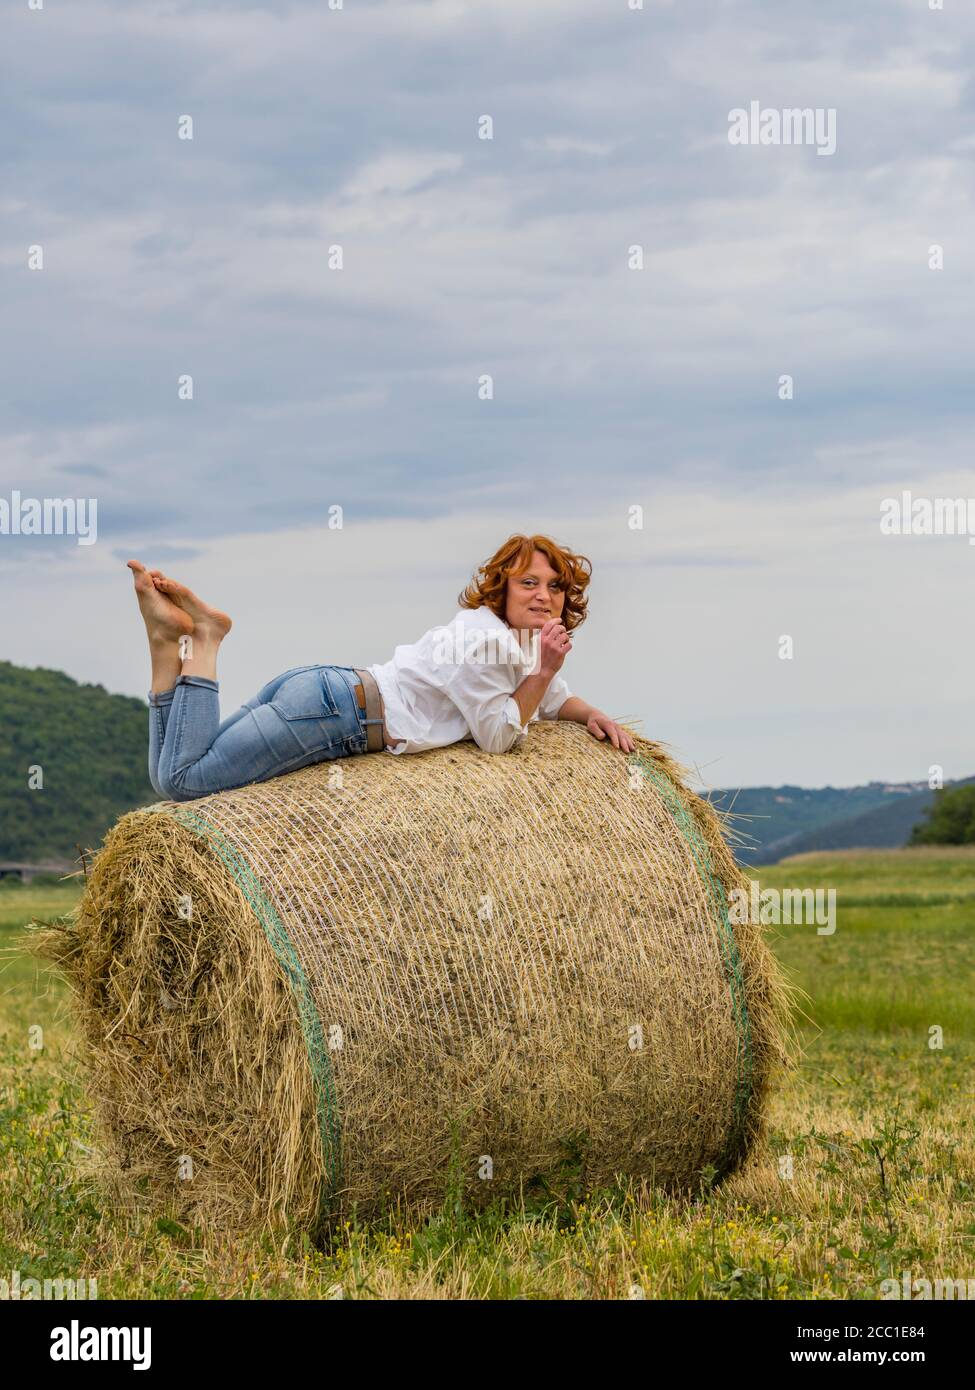 Redhaired woman on hay haystack leisure Stock Photo